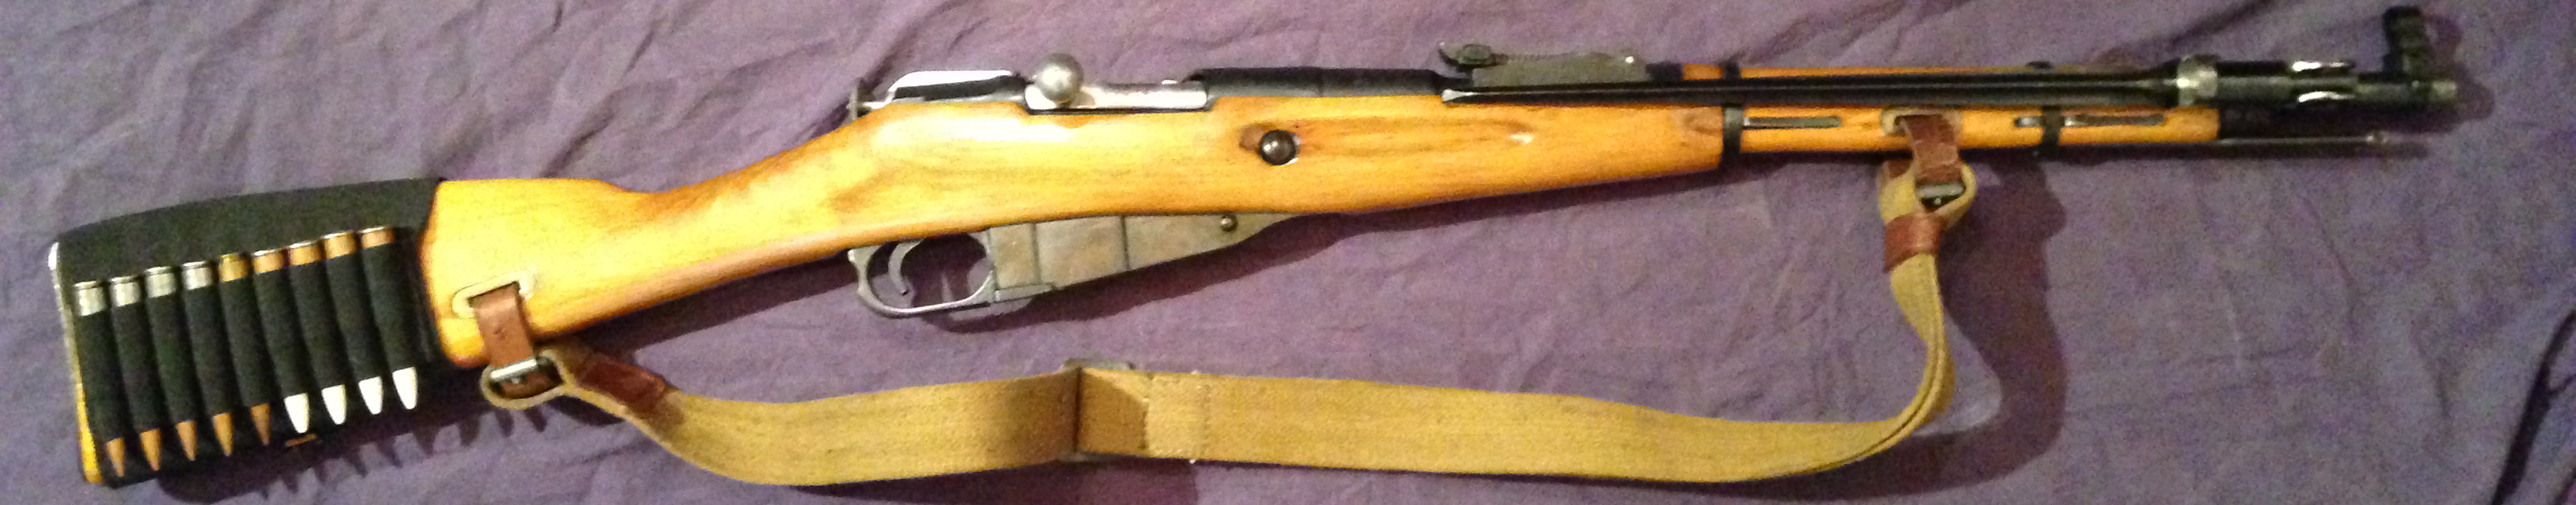 Conversion Mosin Nagant 91/30 En M44 Y2ax